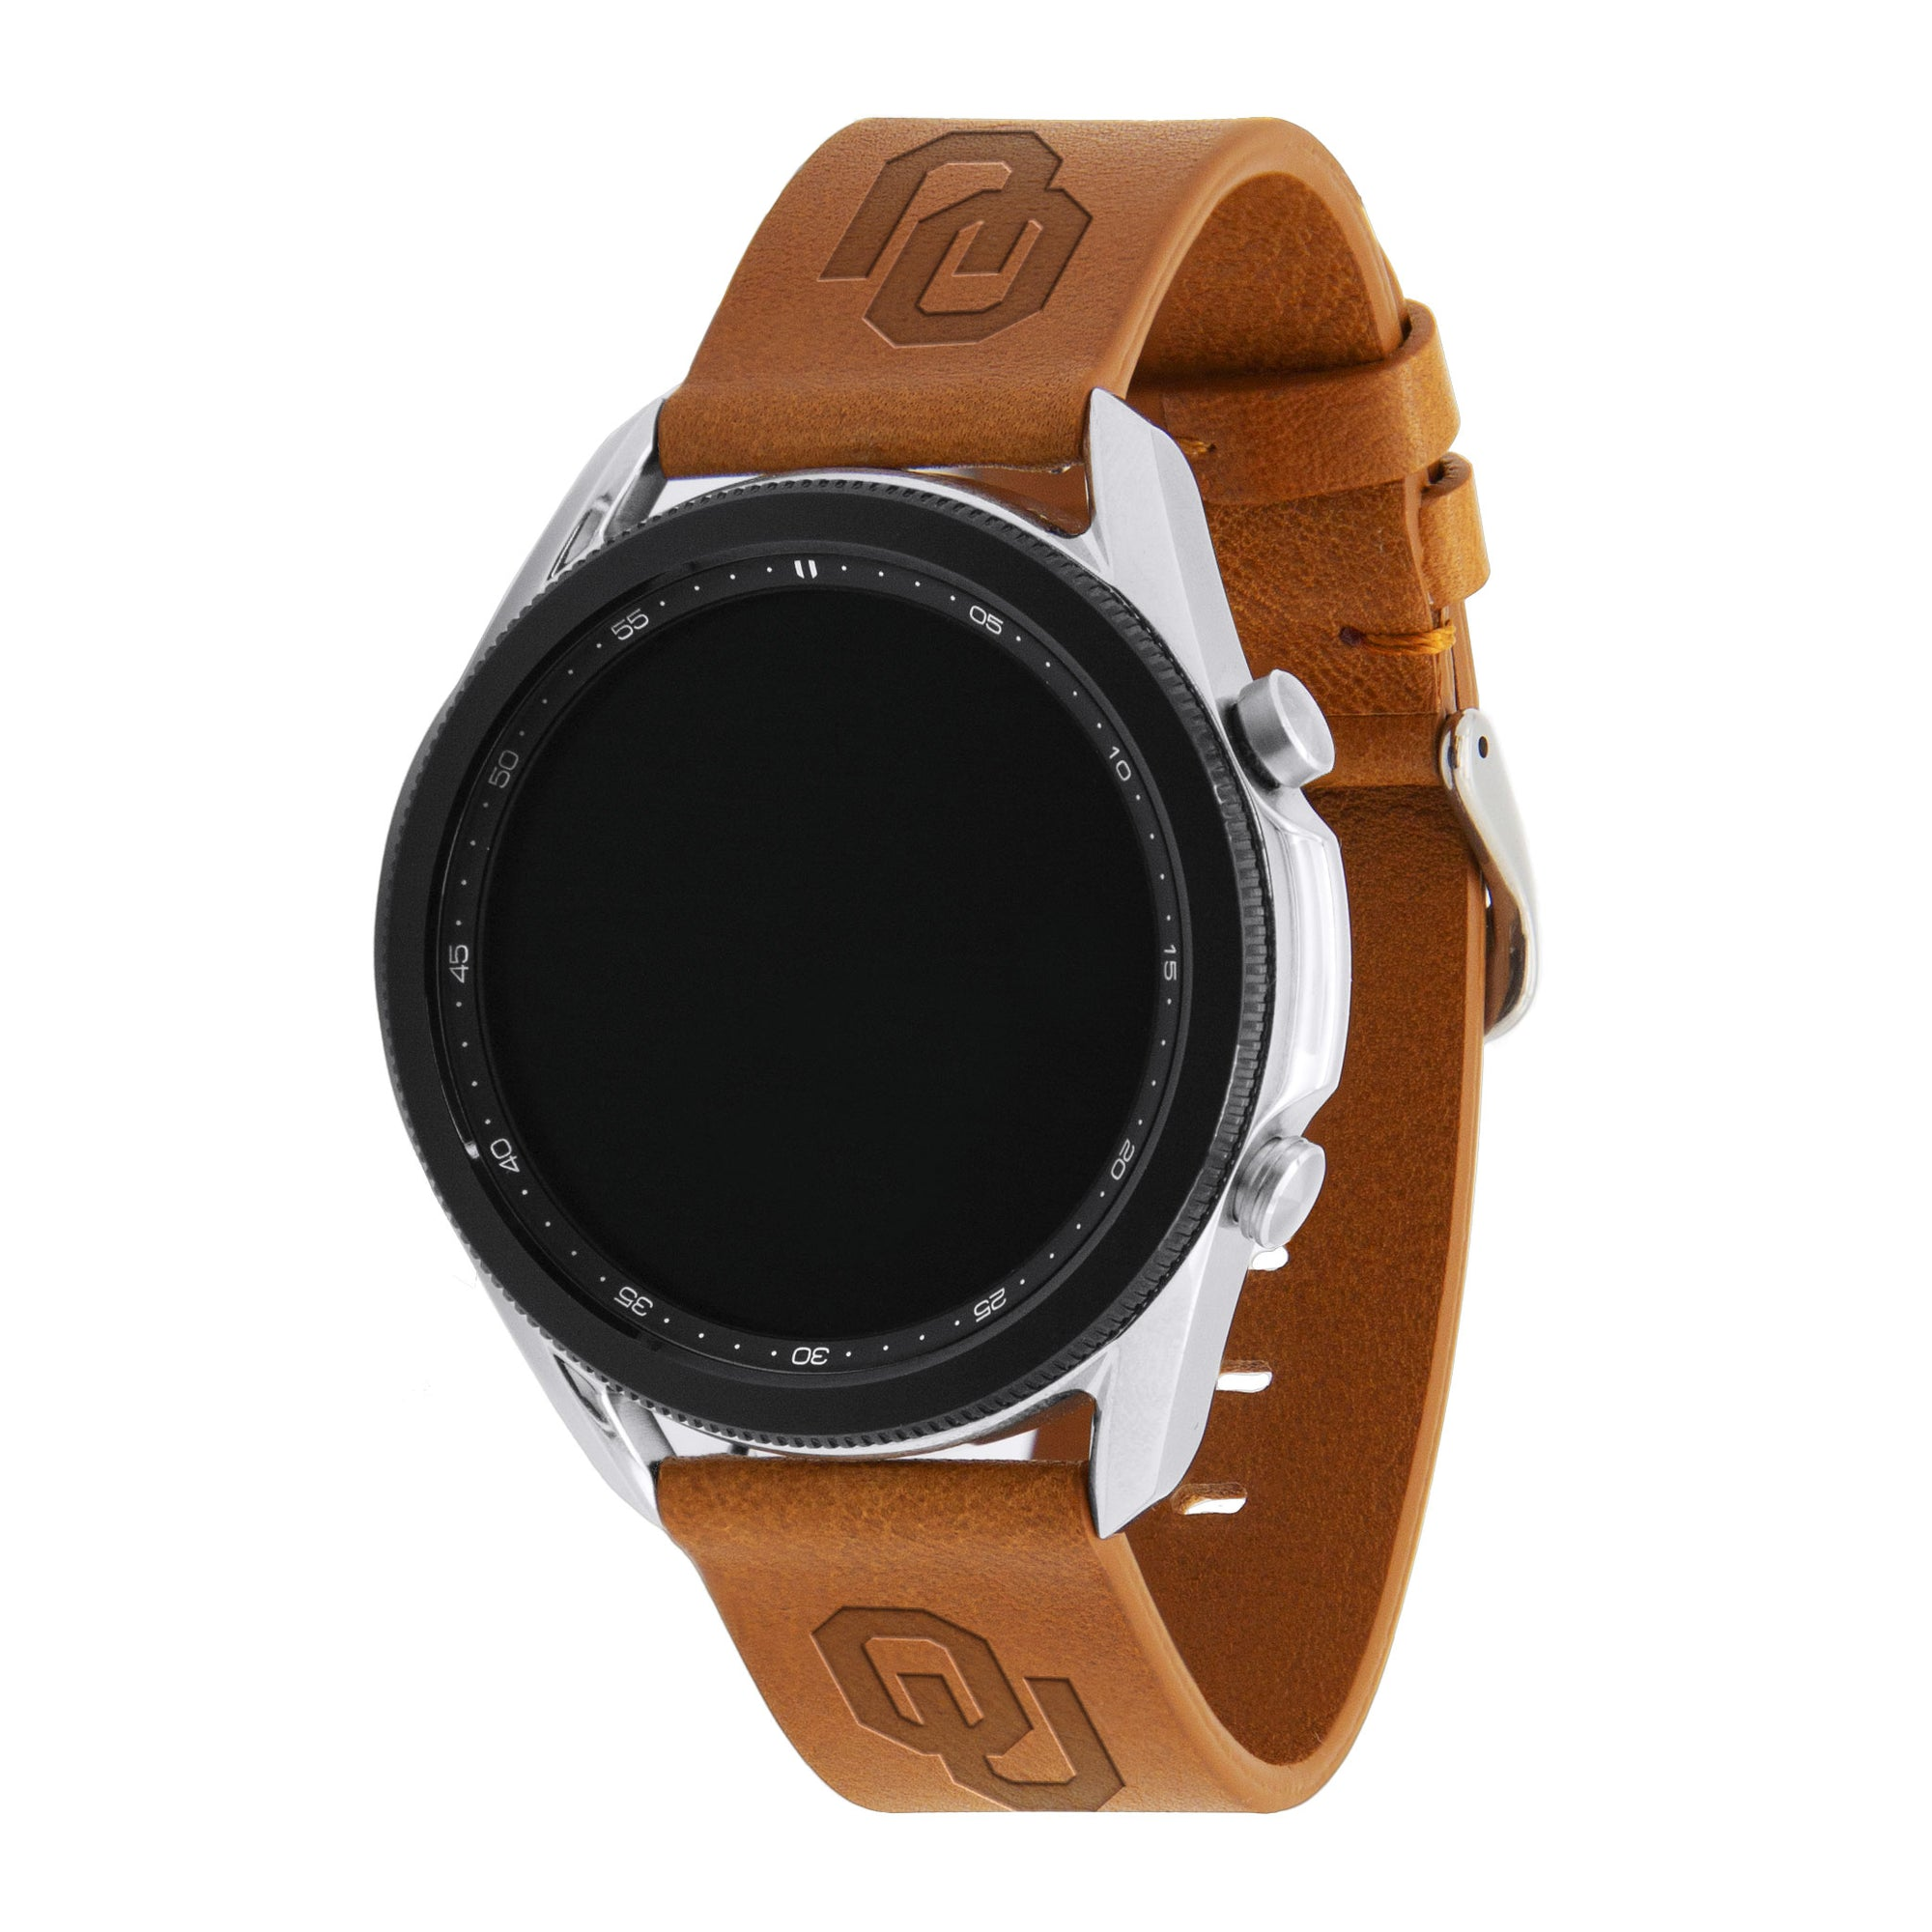 Oklahoma Sooners Quick Change Leather Watch Band - AffinityBands